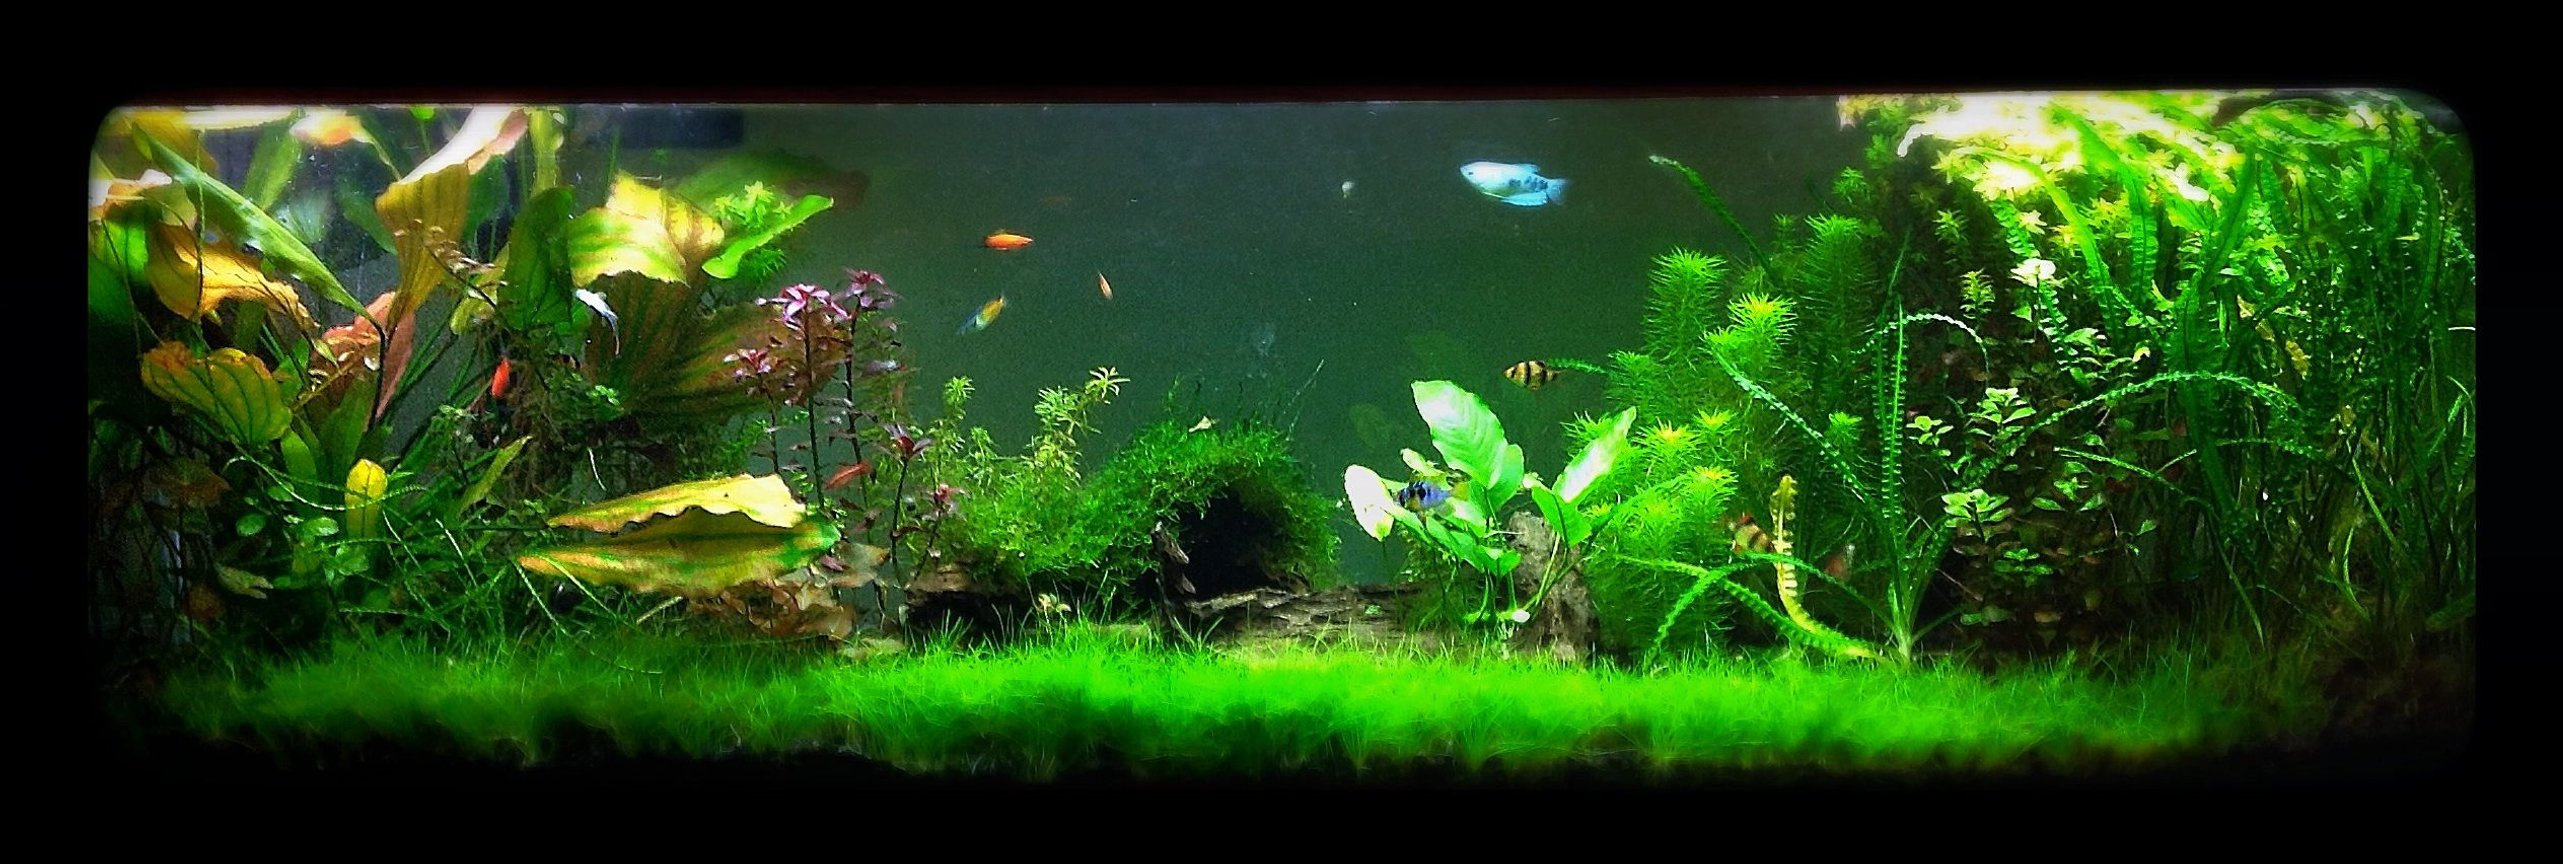 125 gallons freshwater fish tank (mostly fish and non-living decorations) - 125 gallon tank